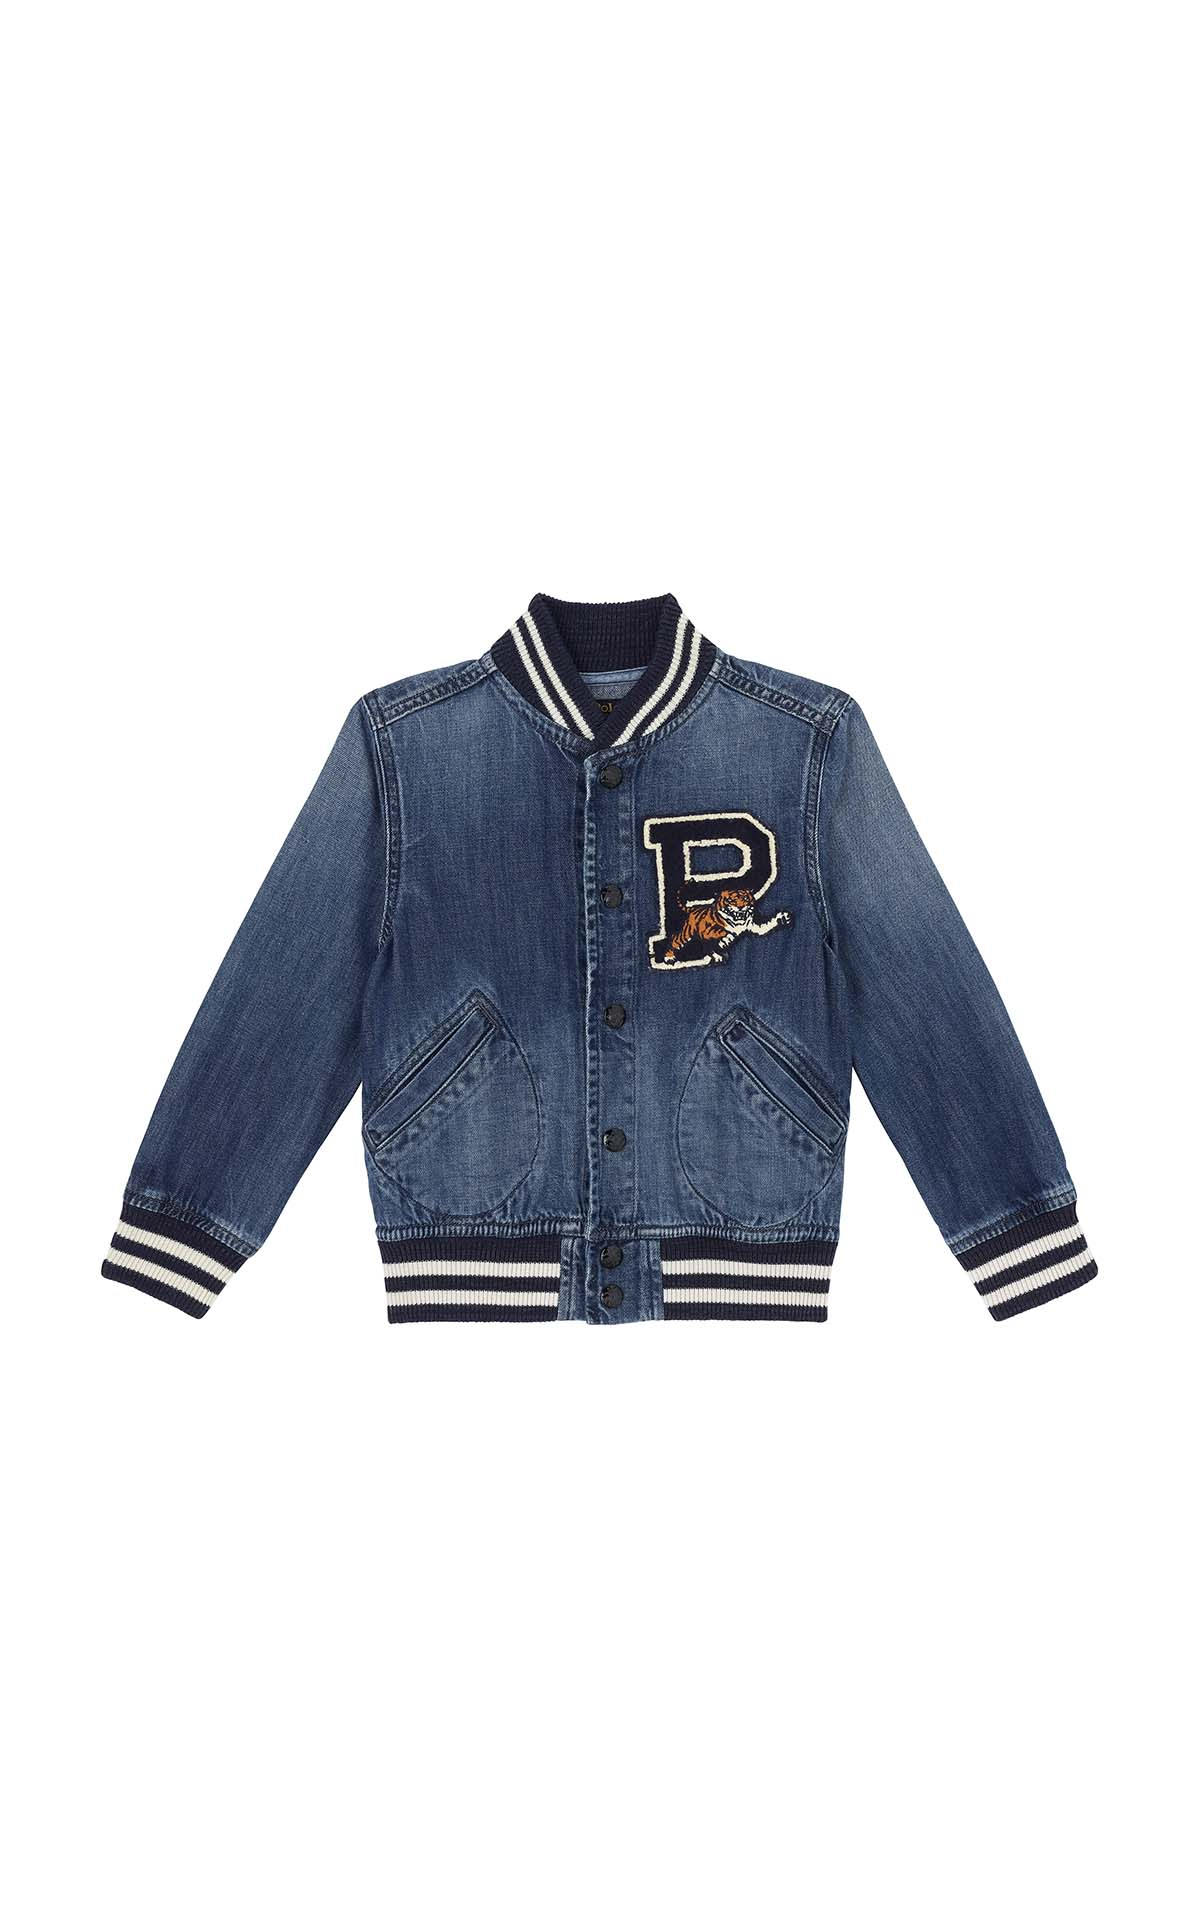 Polo Ralph Lauren Children Baseball jacket at The Bicester Village Shopping Collection